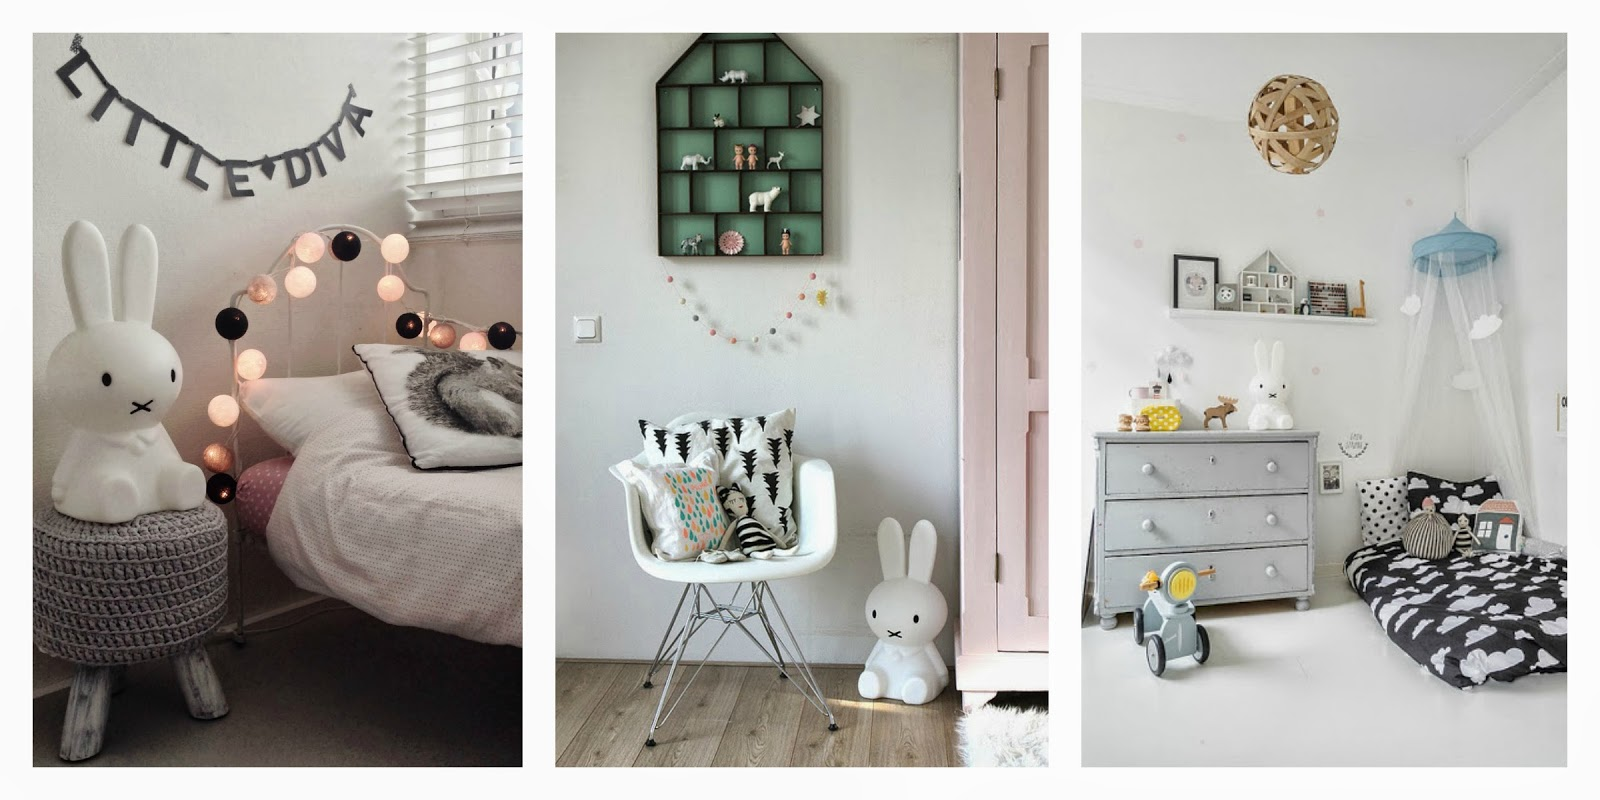 the 5 coolest bedroom items every kid needs according to pinterest bedroom buys bedroom style kids style kids bedrooms kids bedroom